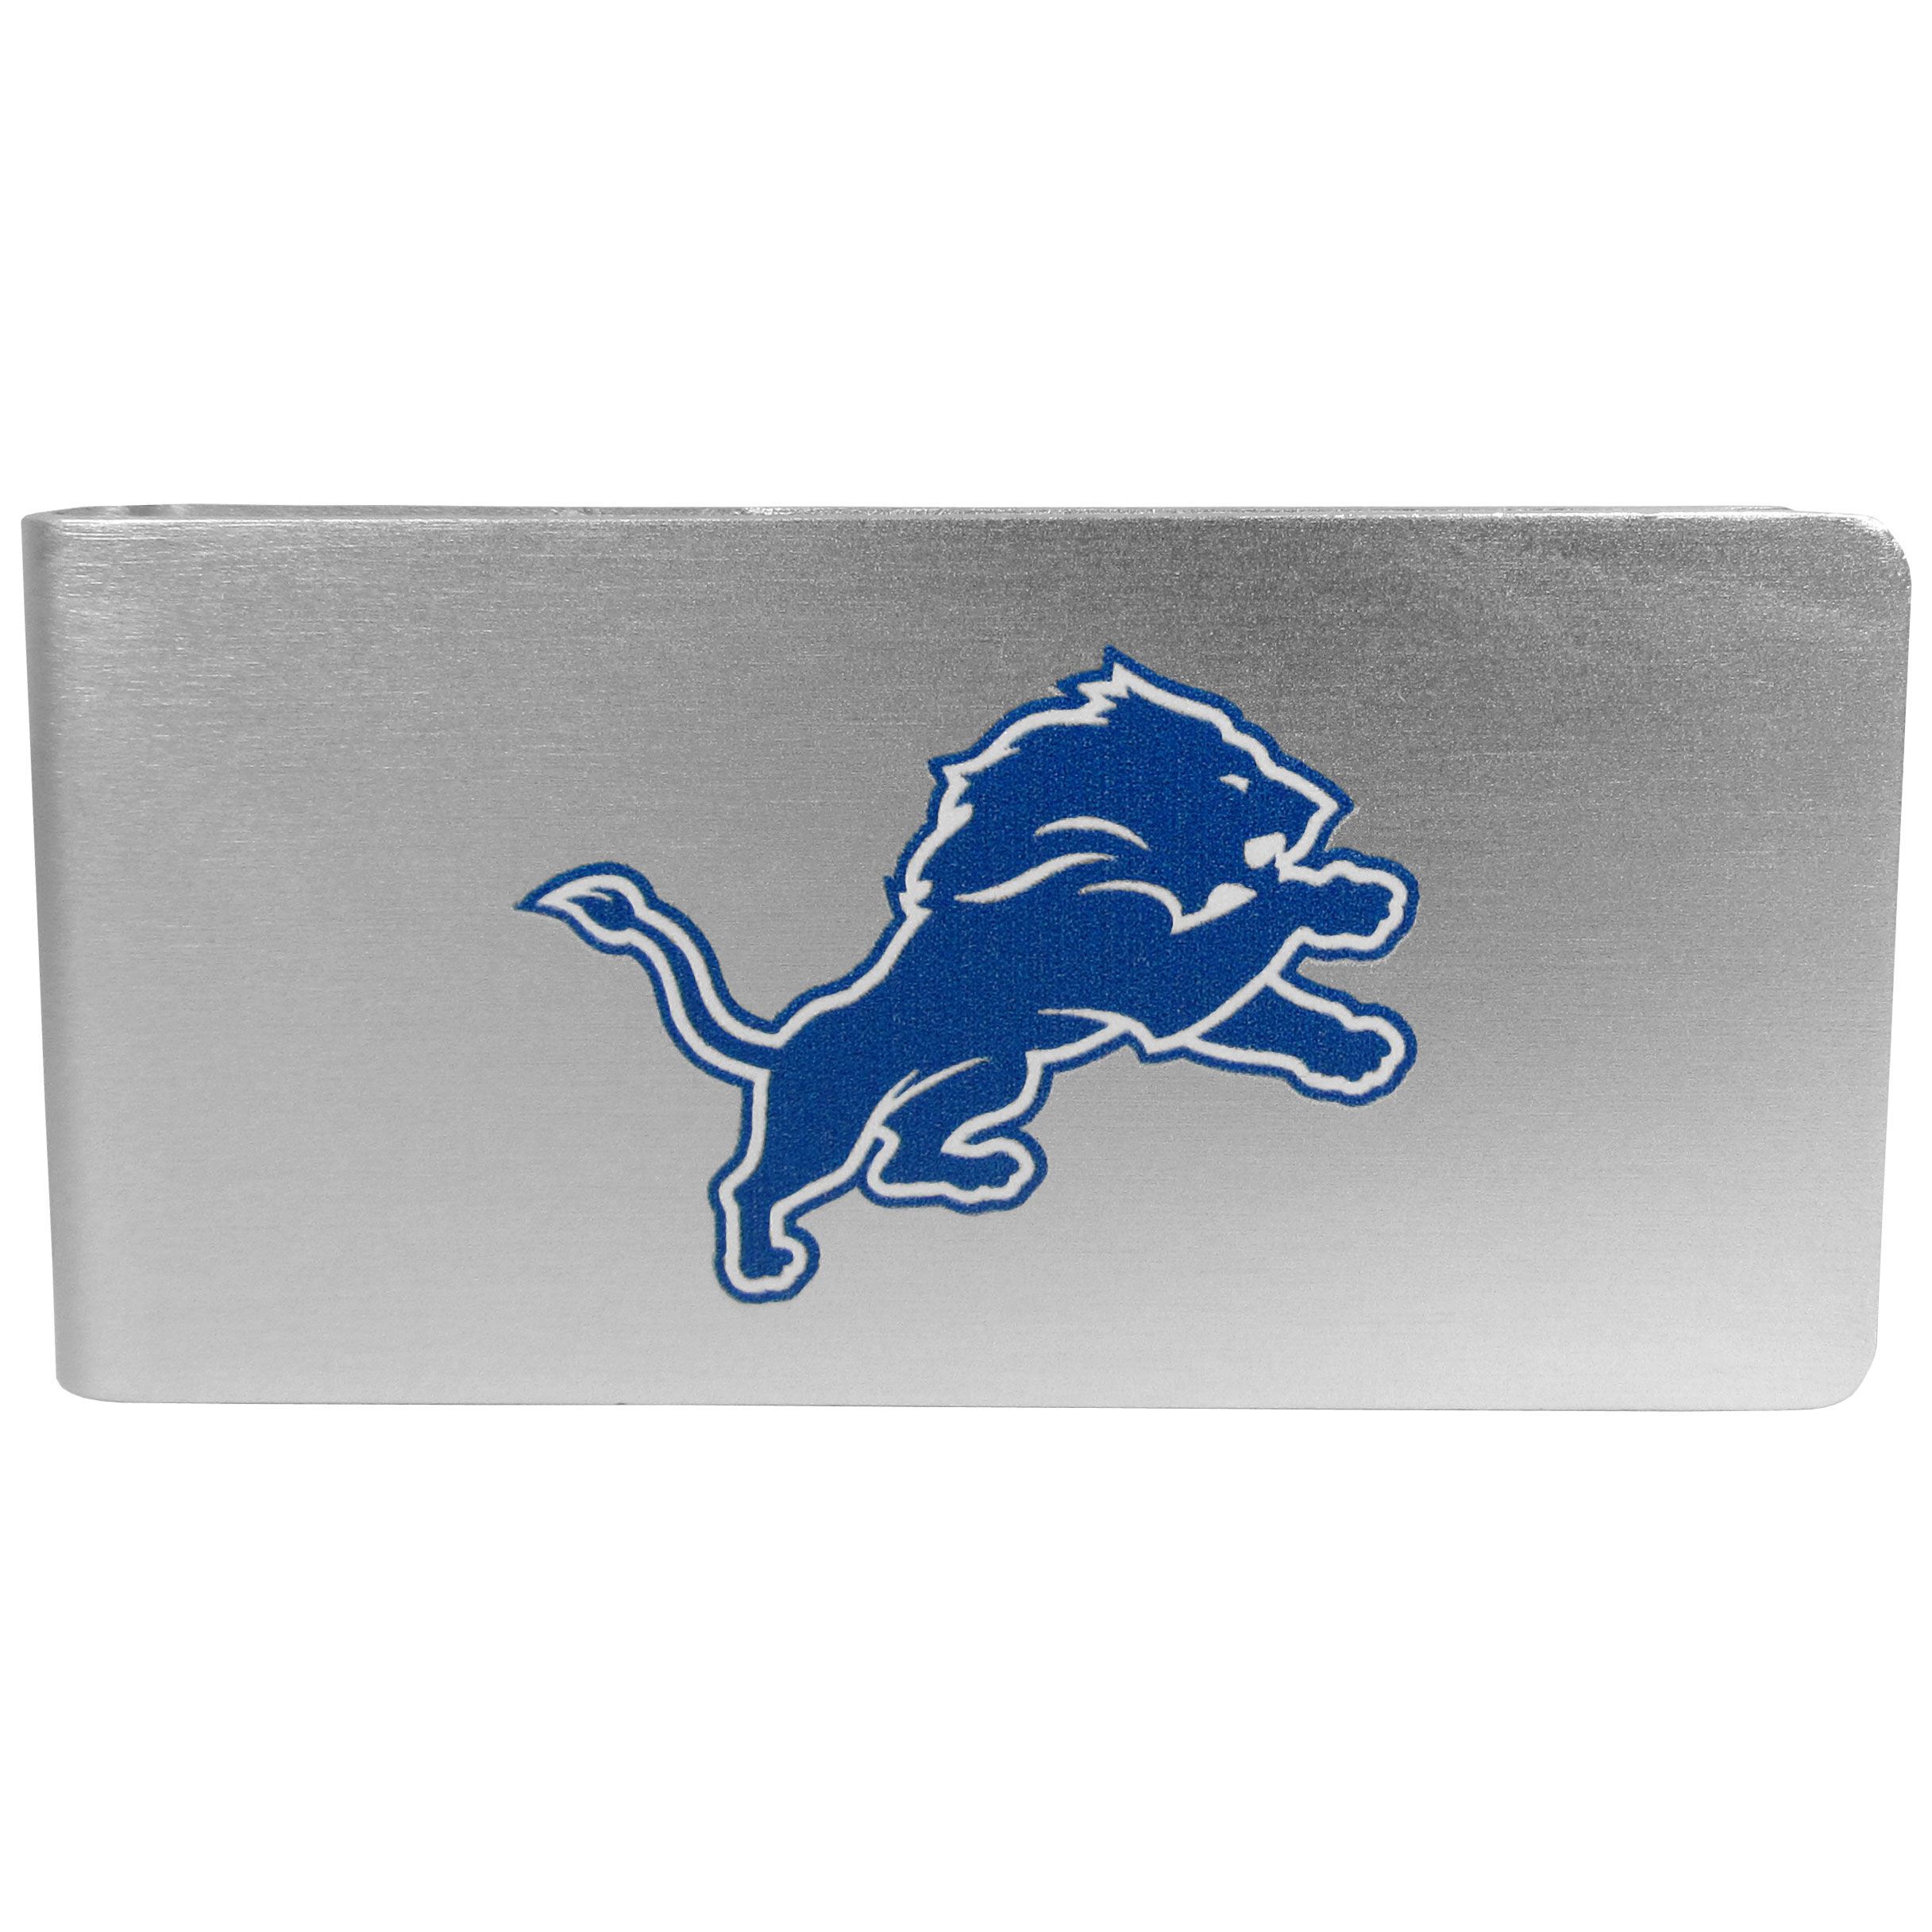 Detroit Lions Logo Money Clip - Our brushed metal money clip has classic style and functionality. The attractive clip features the Detroit Lions logo expertly printed on front.